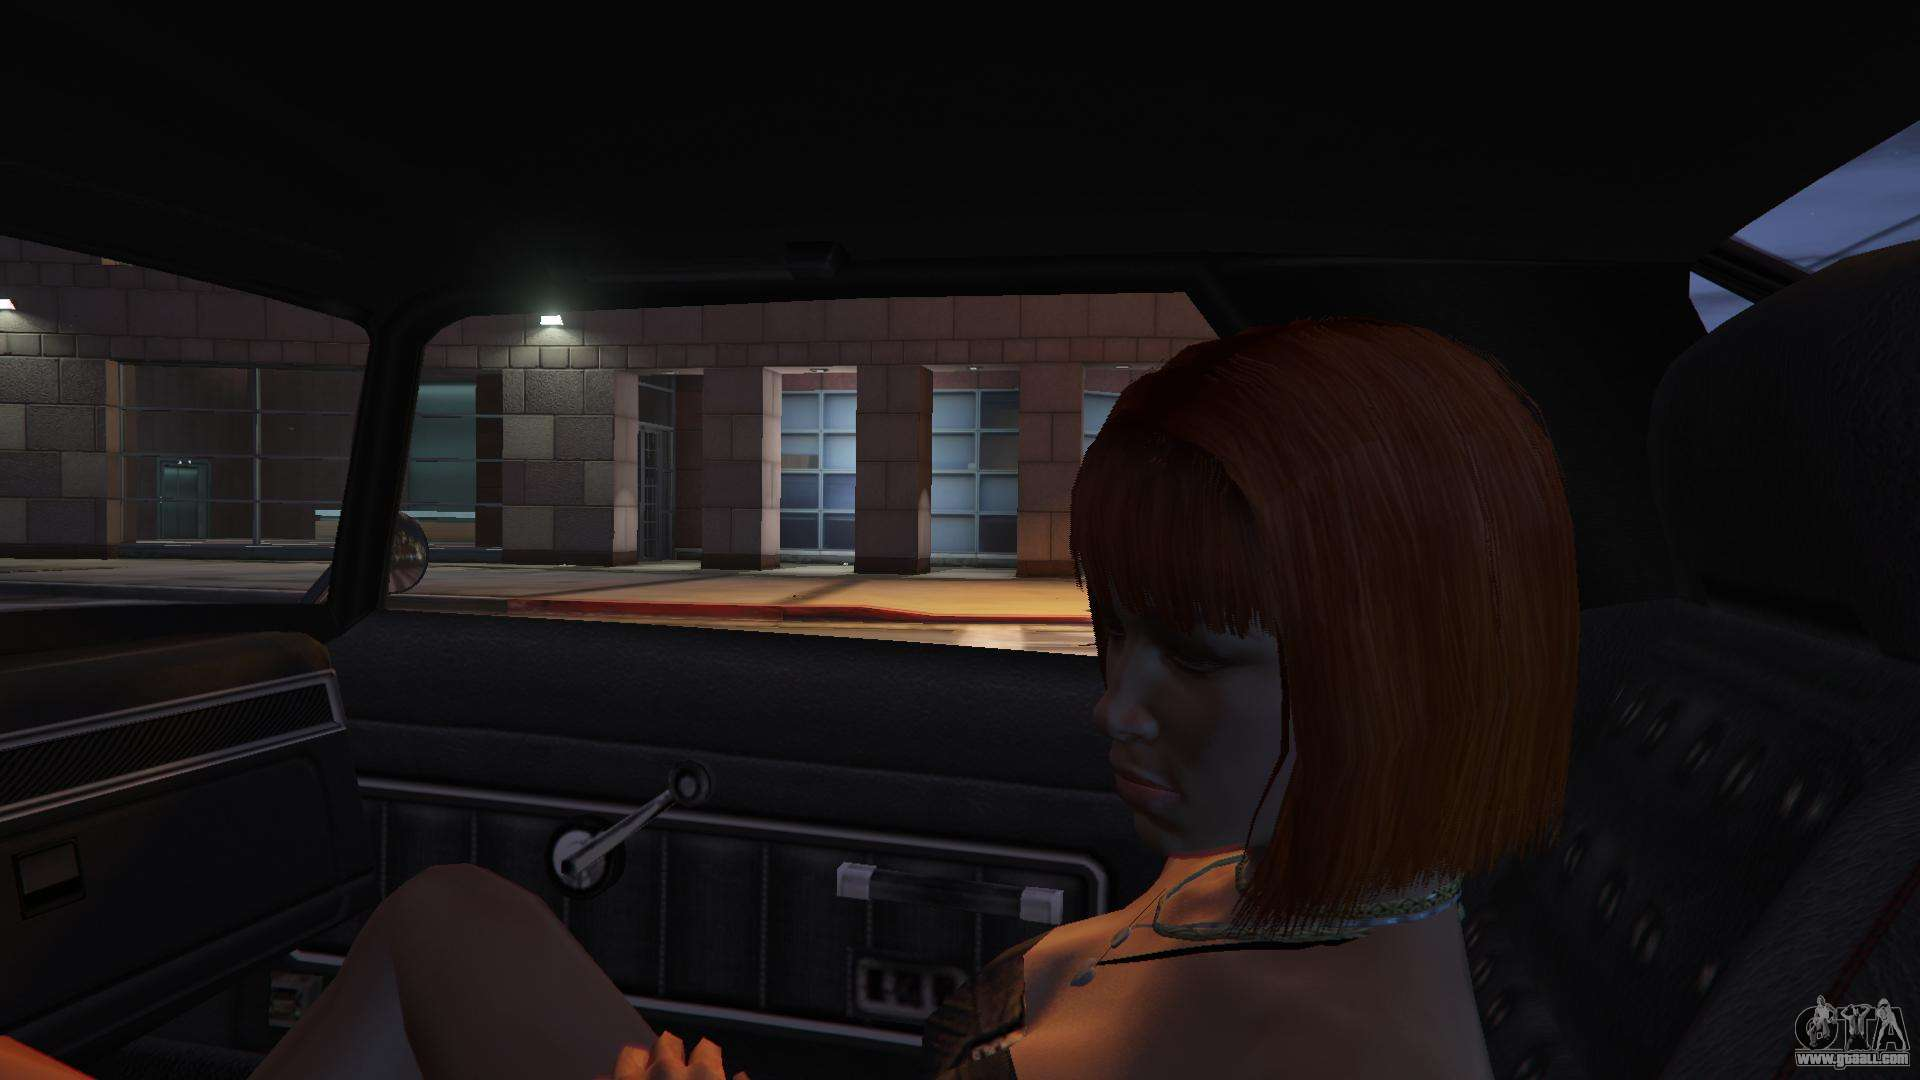 where to find prostitutes in gta 5